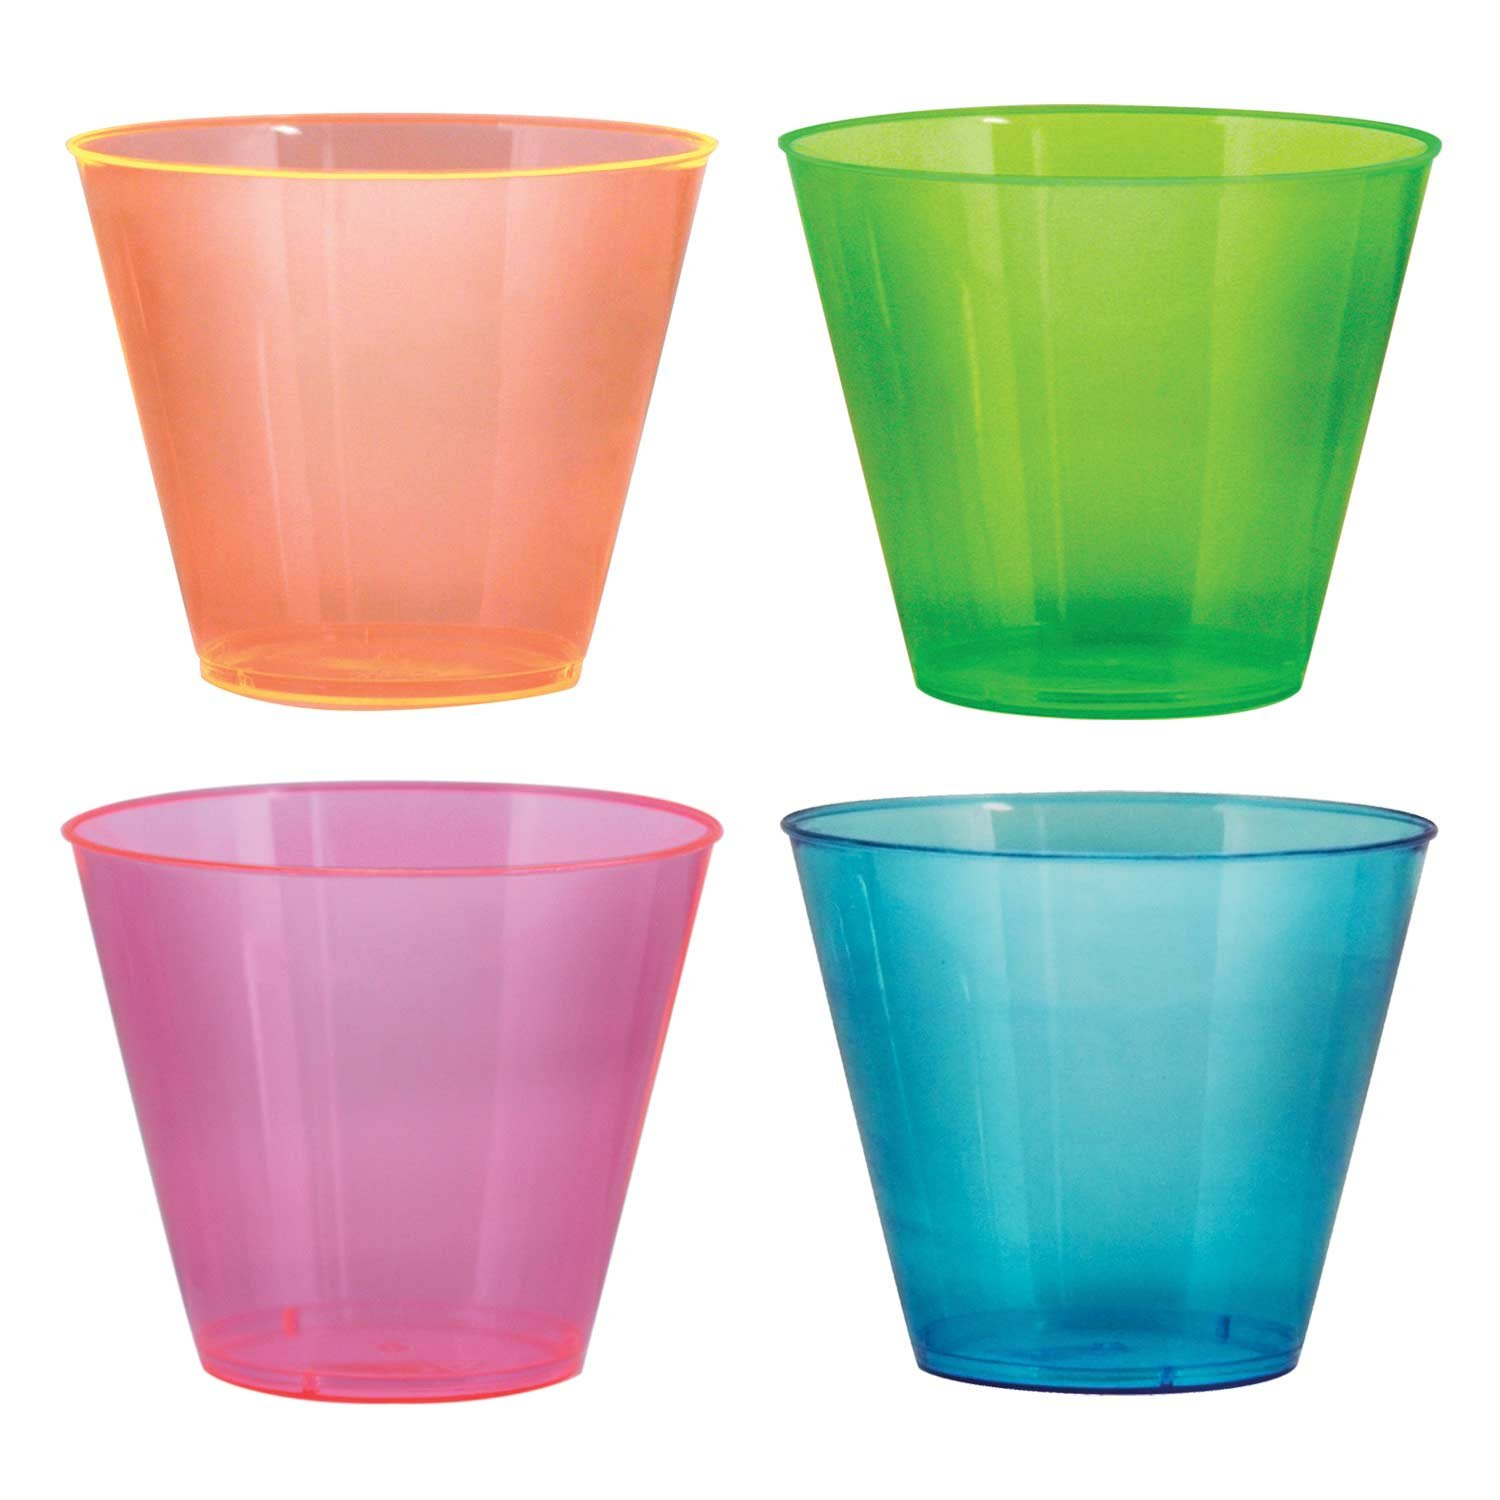 Party Essentials Hard Plastic 9-Ounce Party Cups/Old Fashioned Tumblers, 200-Count, Assorted Neon by Party Essentials (Image #1)